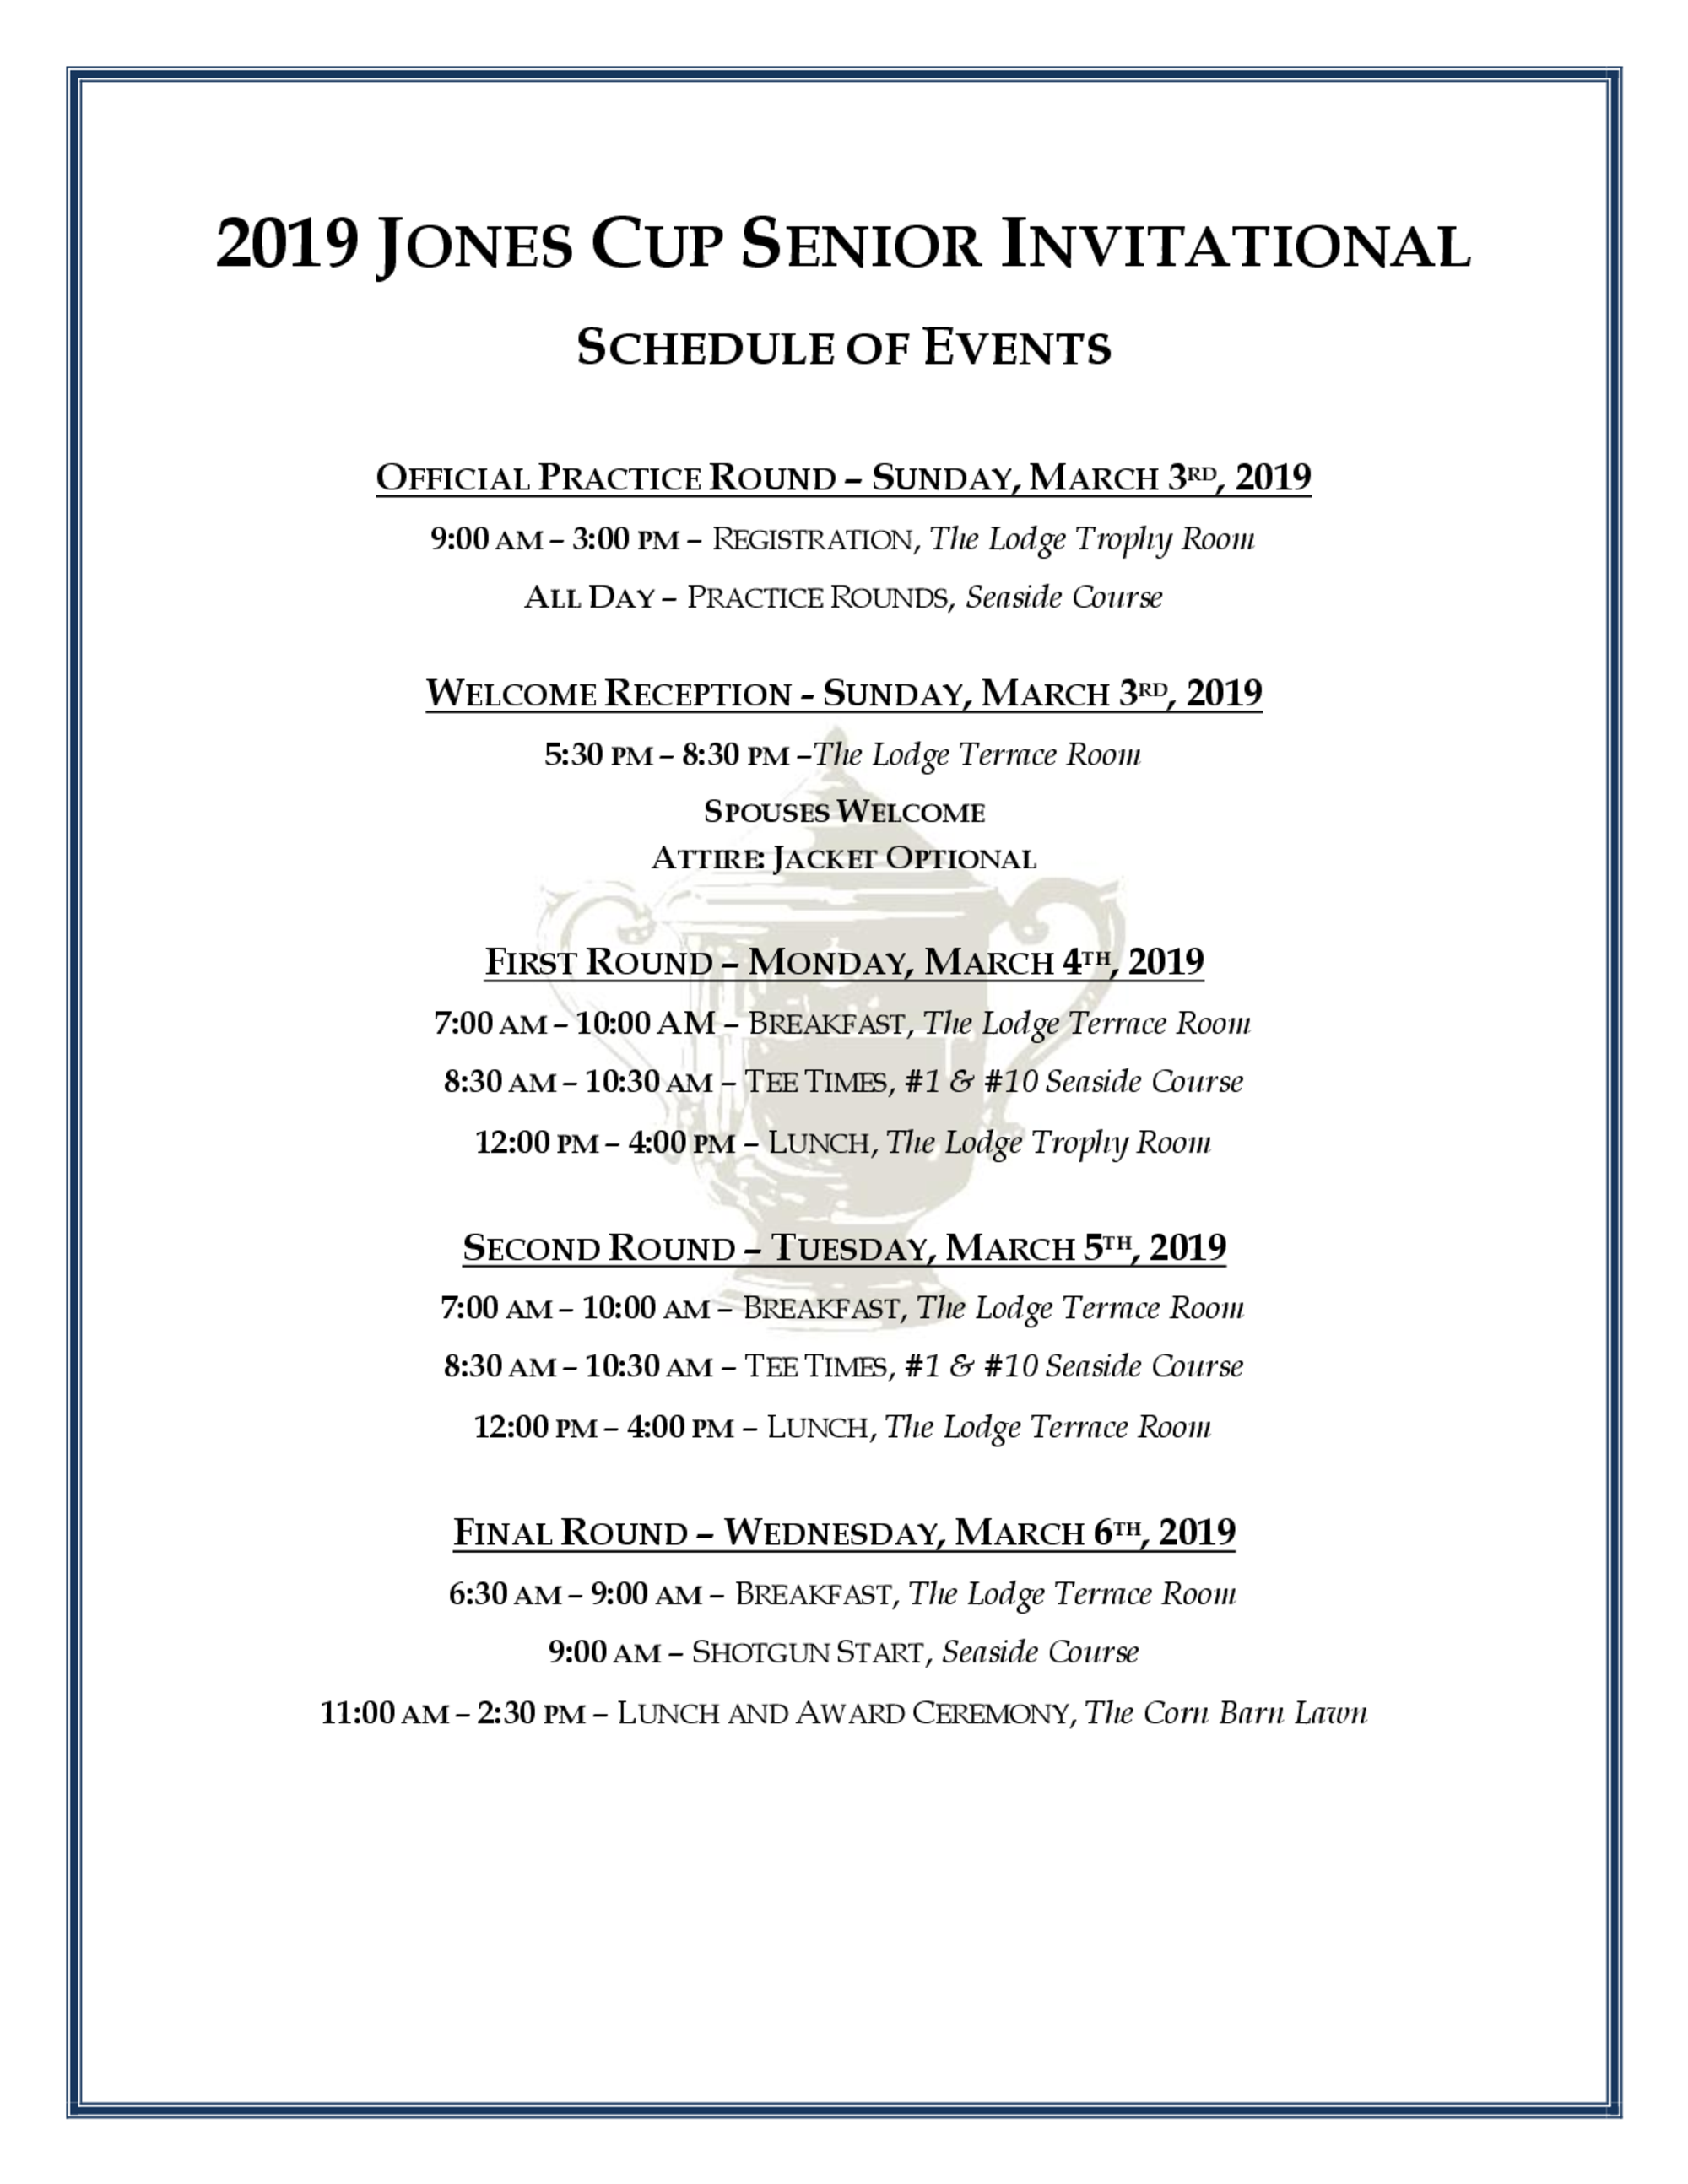 Schedule of events for golf genius page 2019 1